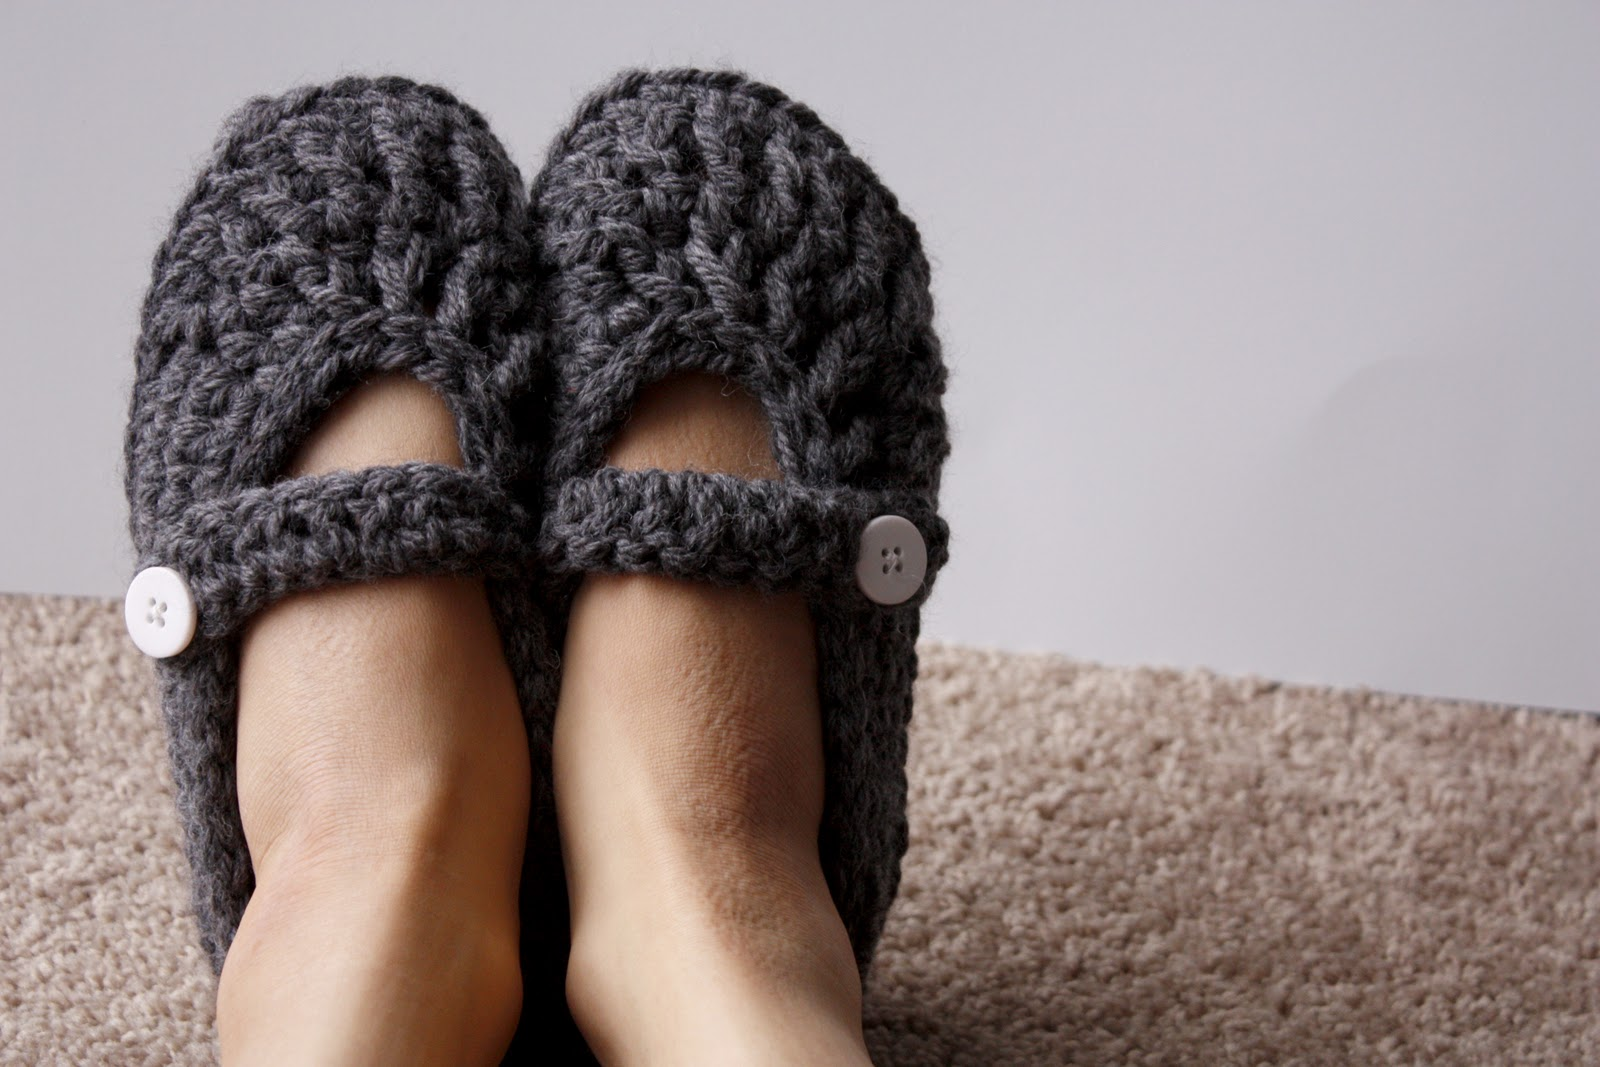 Crochet Patterns Slippers : Crochet slipper patterns including mary jane slippers, moccasin ...